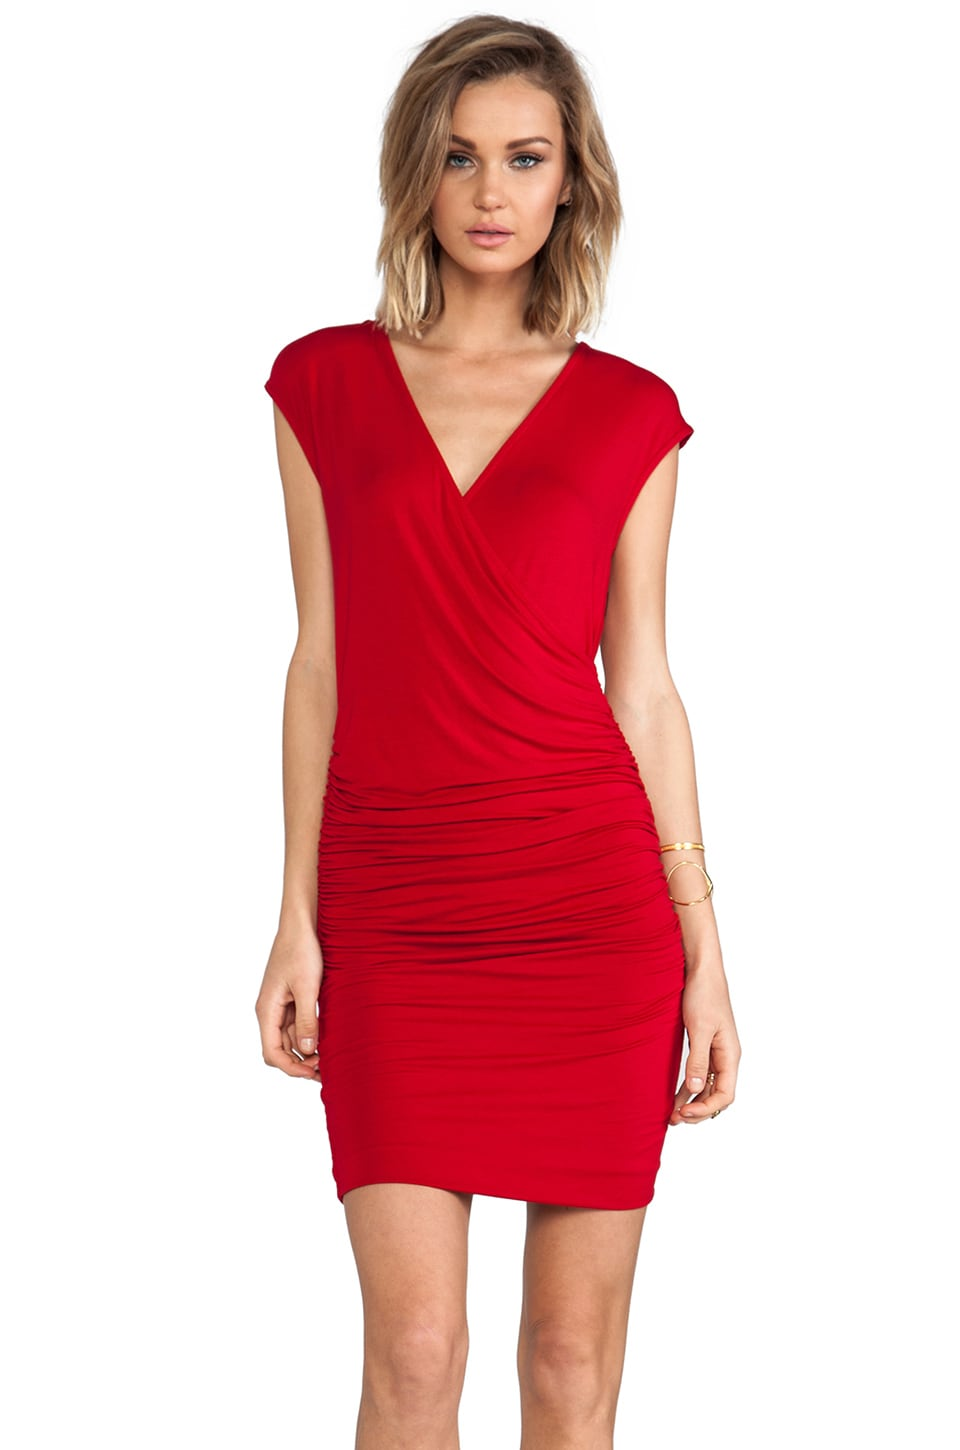 Bobi Short Sleeve V-Neck Dress in Scarlett